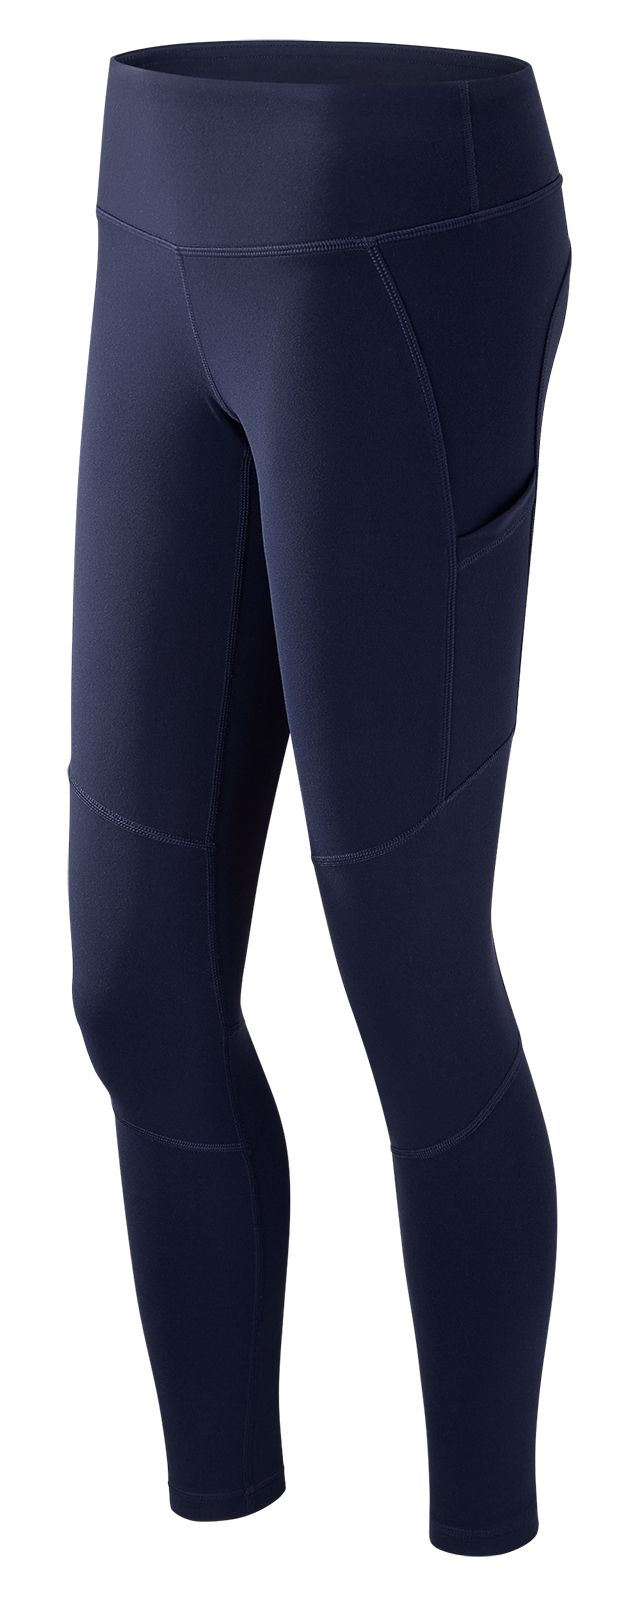 Women's J.Crew Fashion Tight